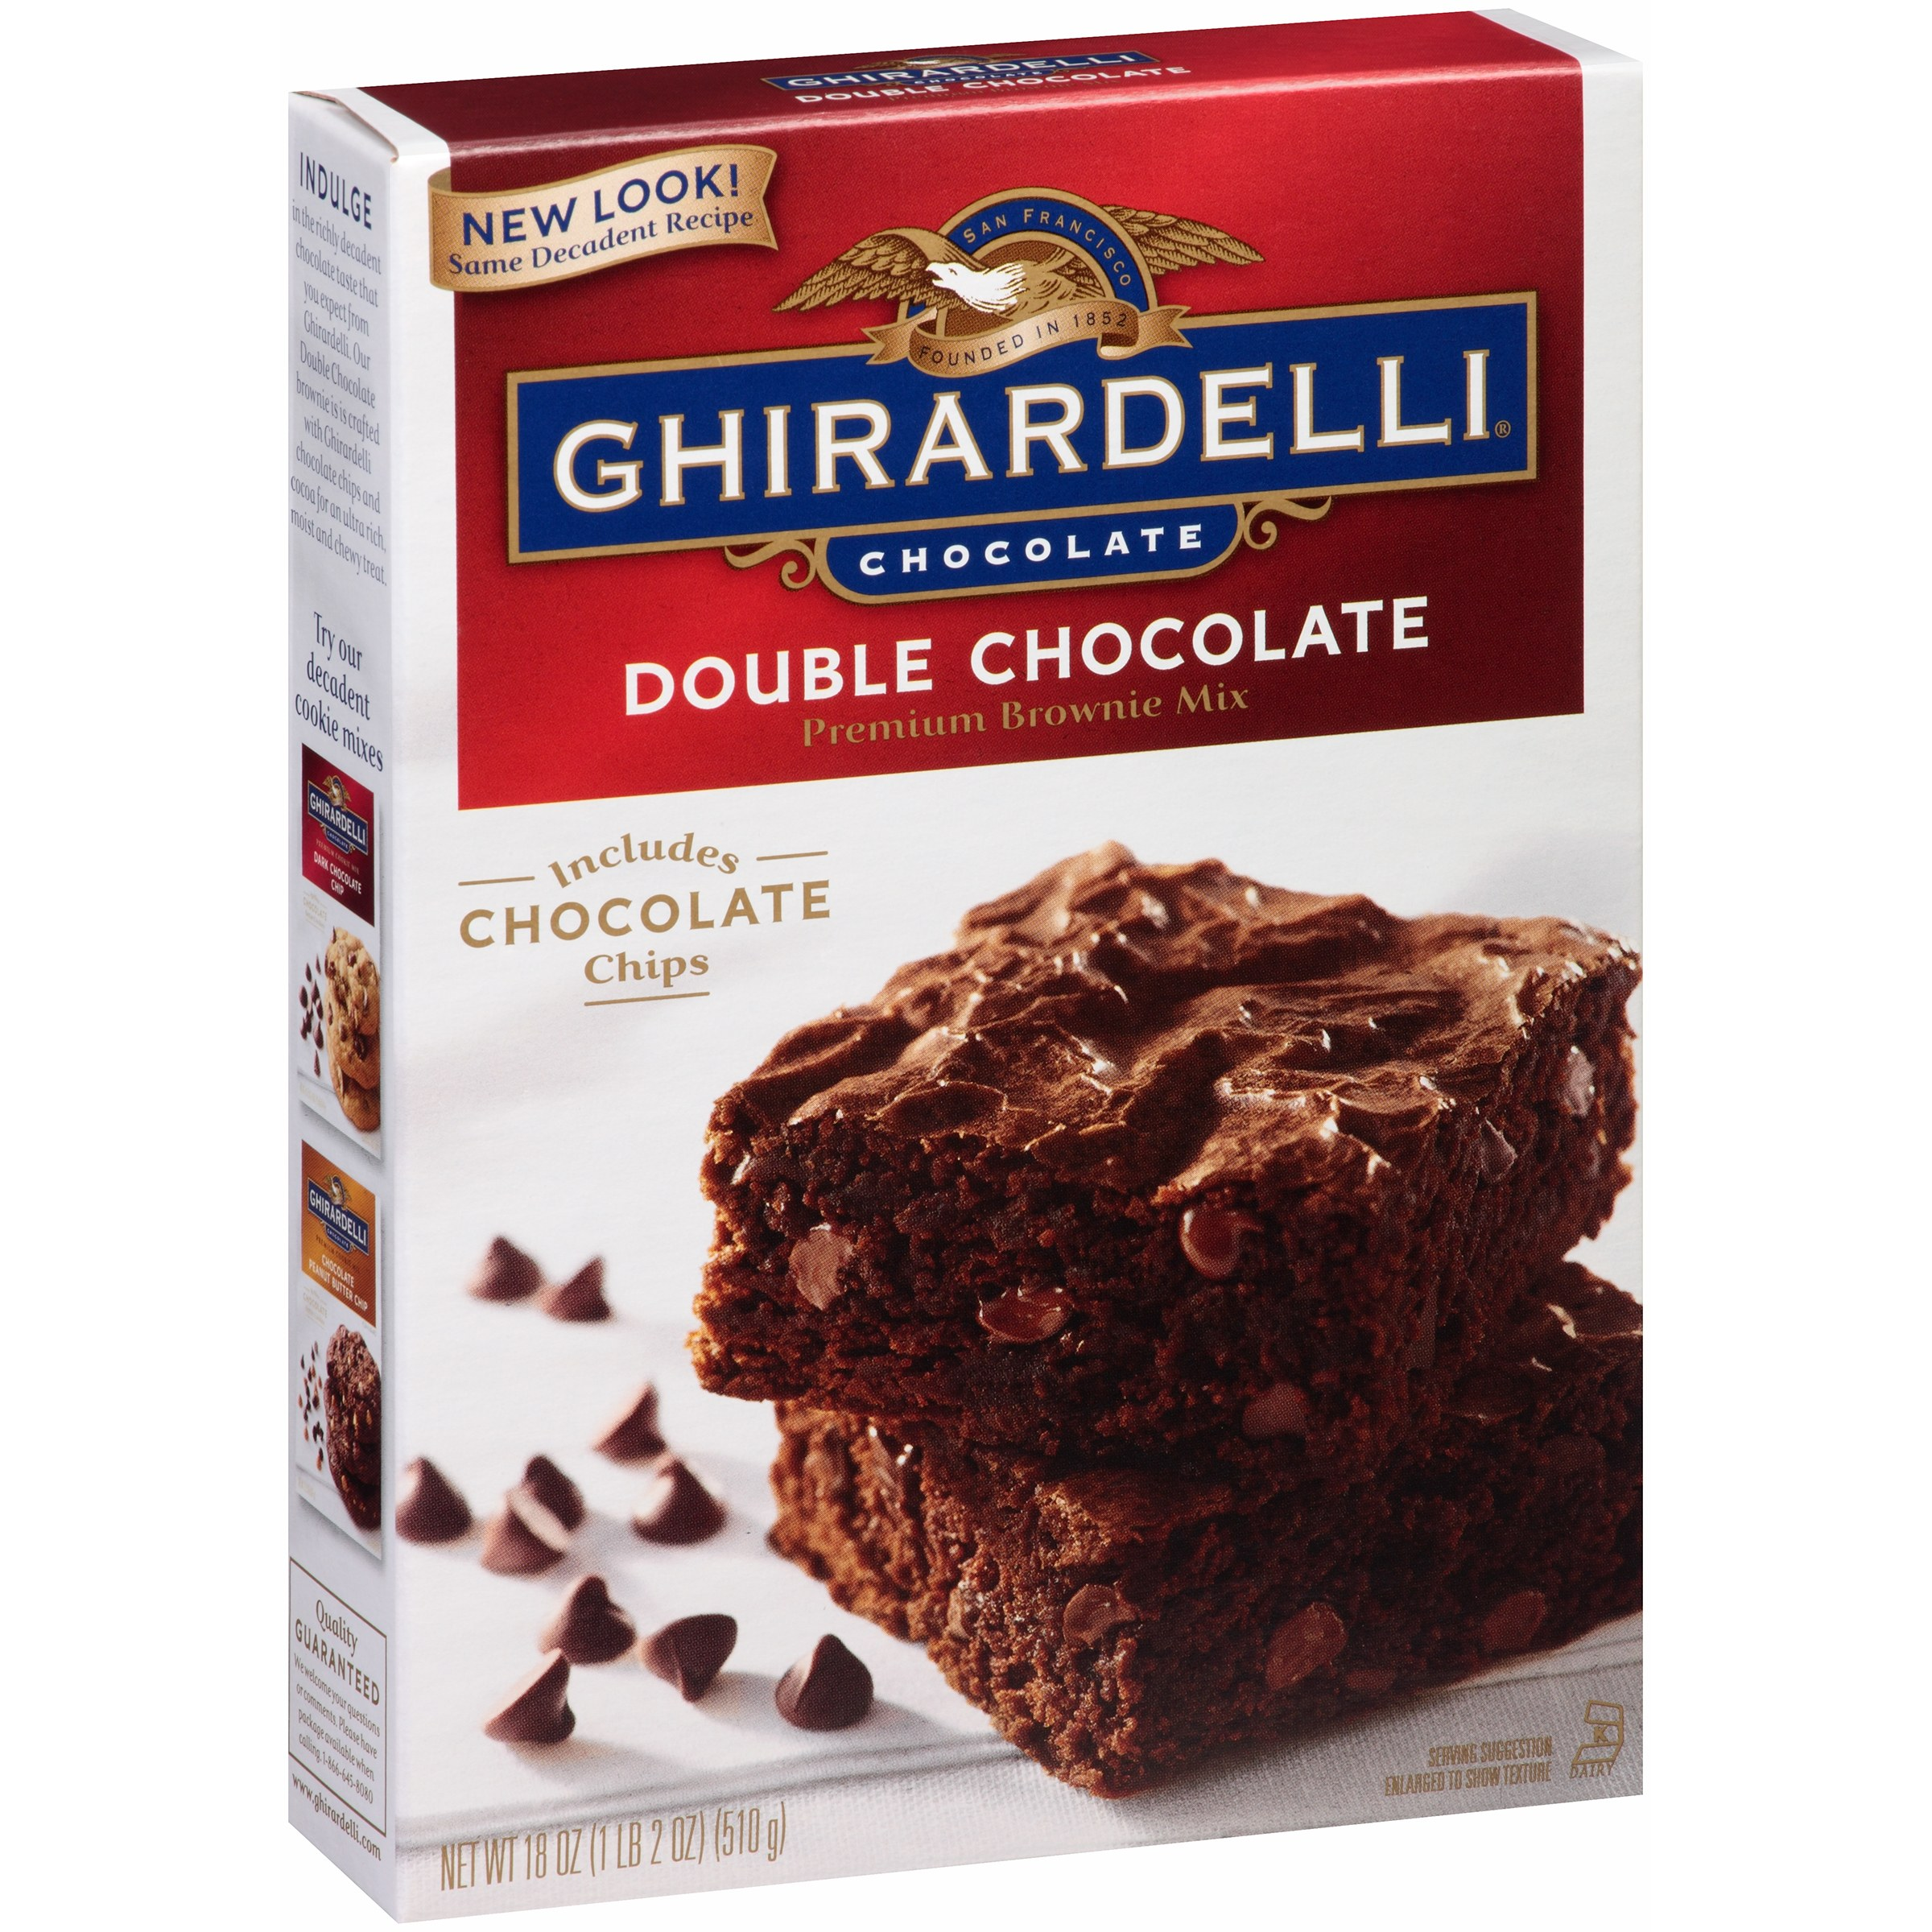 Ghirardelli Double Chocolate Premium Brownie Mix, 18 oz